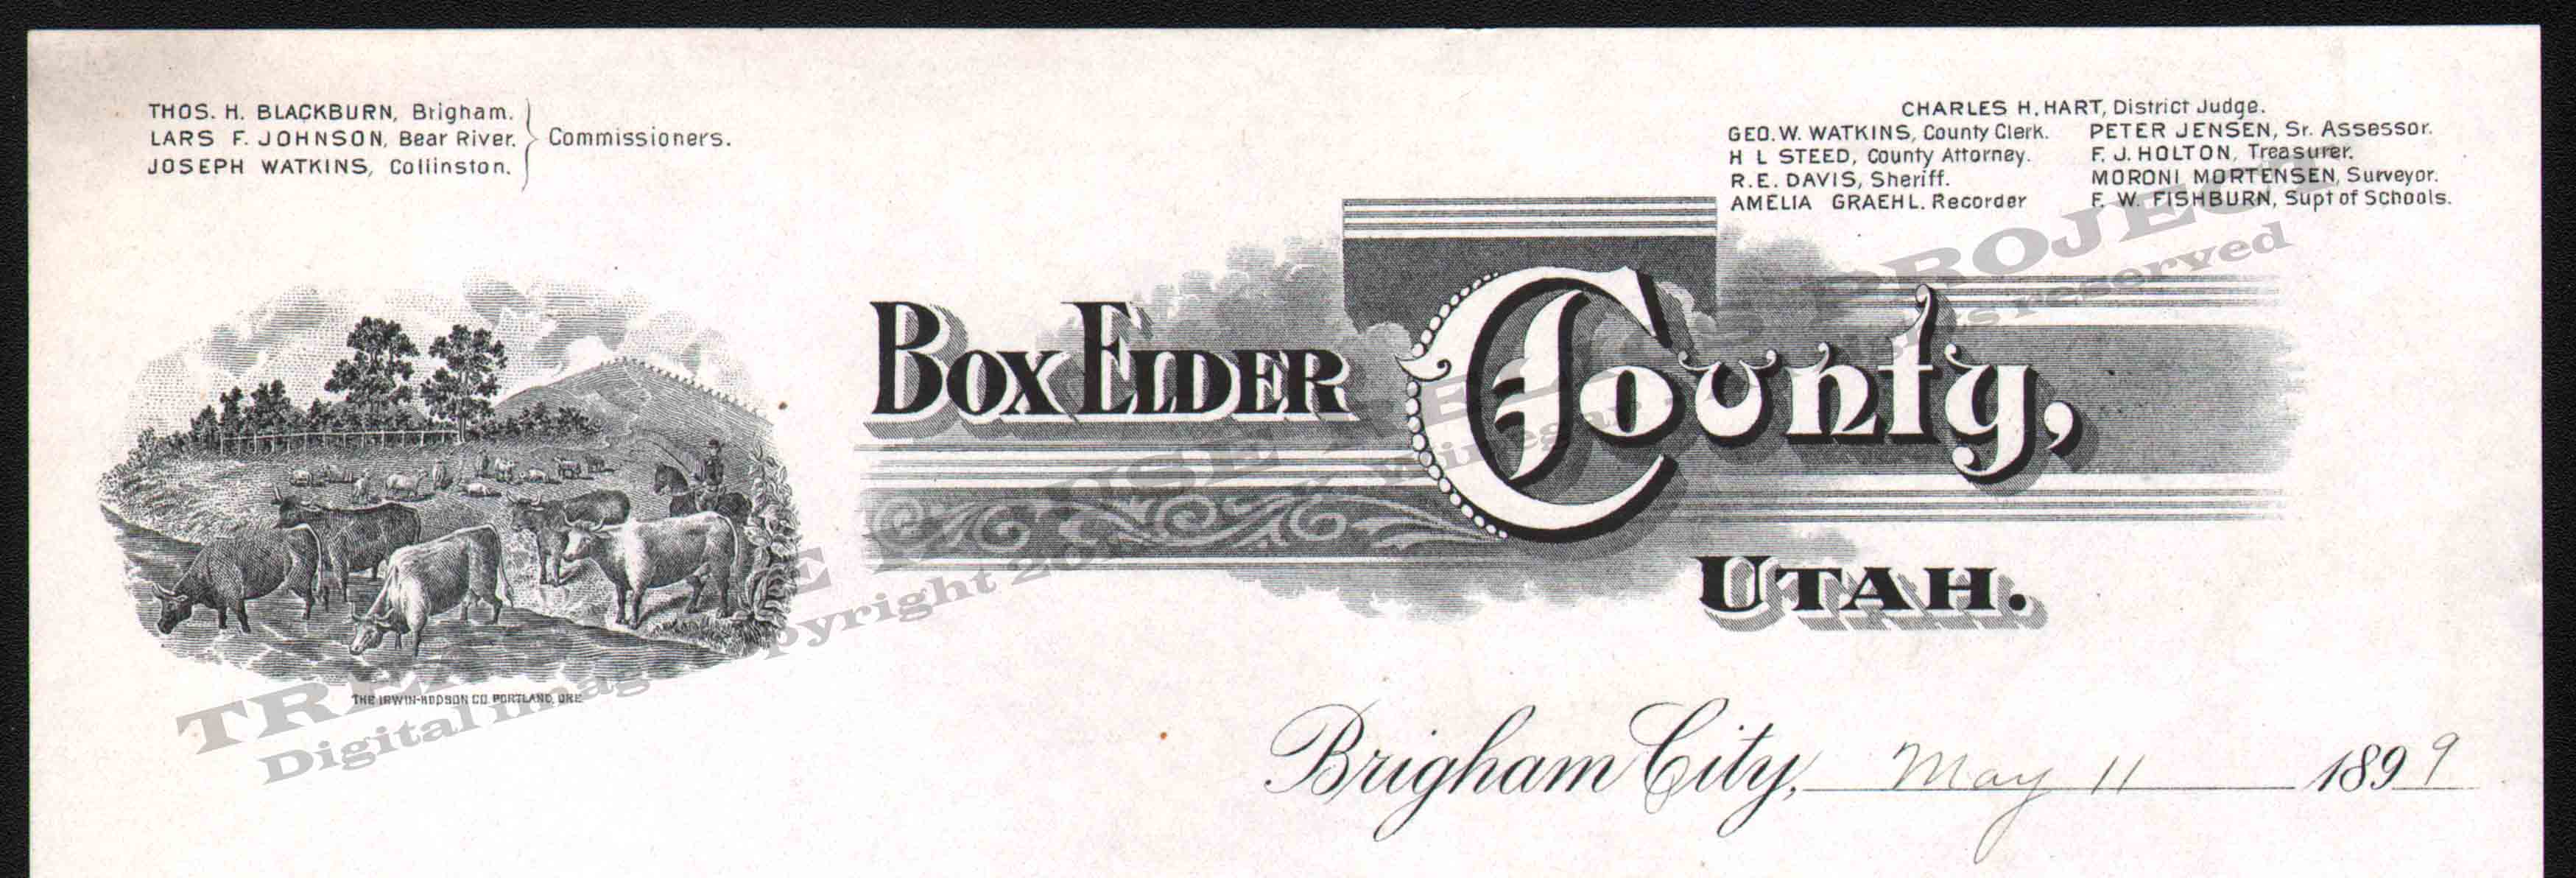 LETTERHEAD_BOX_ELDER_COUNTY_5_11_1891_400_crop_emboss.jpg